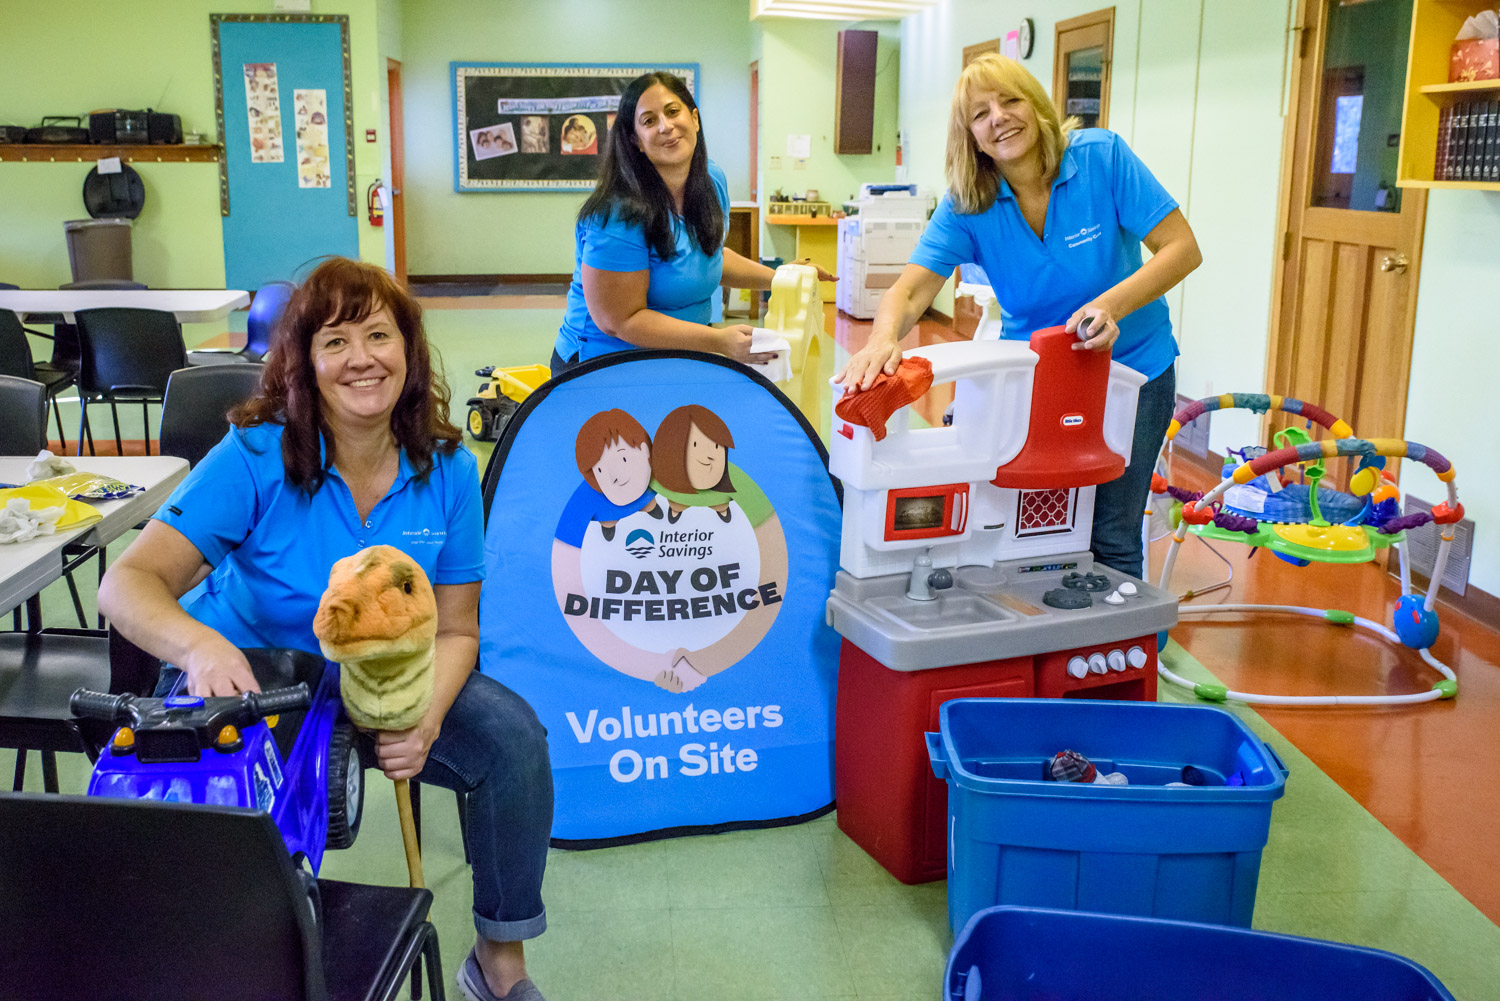 Interior Savings staff helps out in community on 'Day of ...